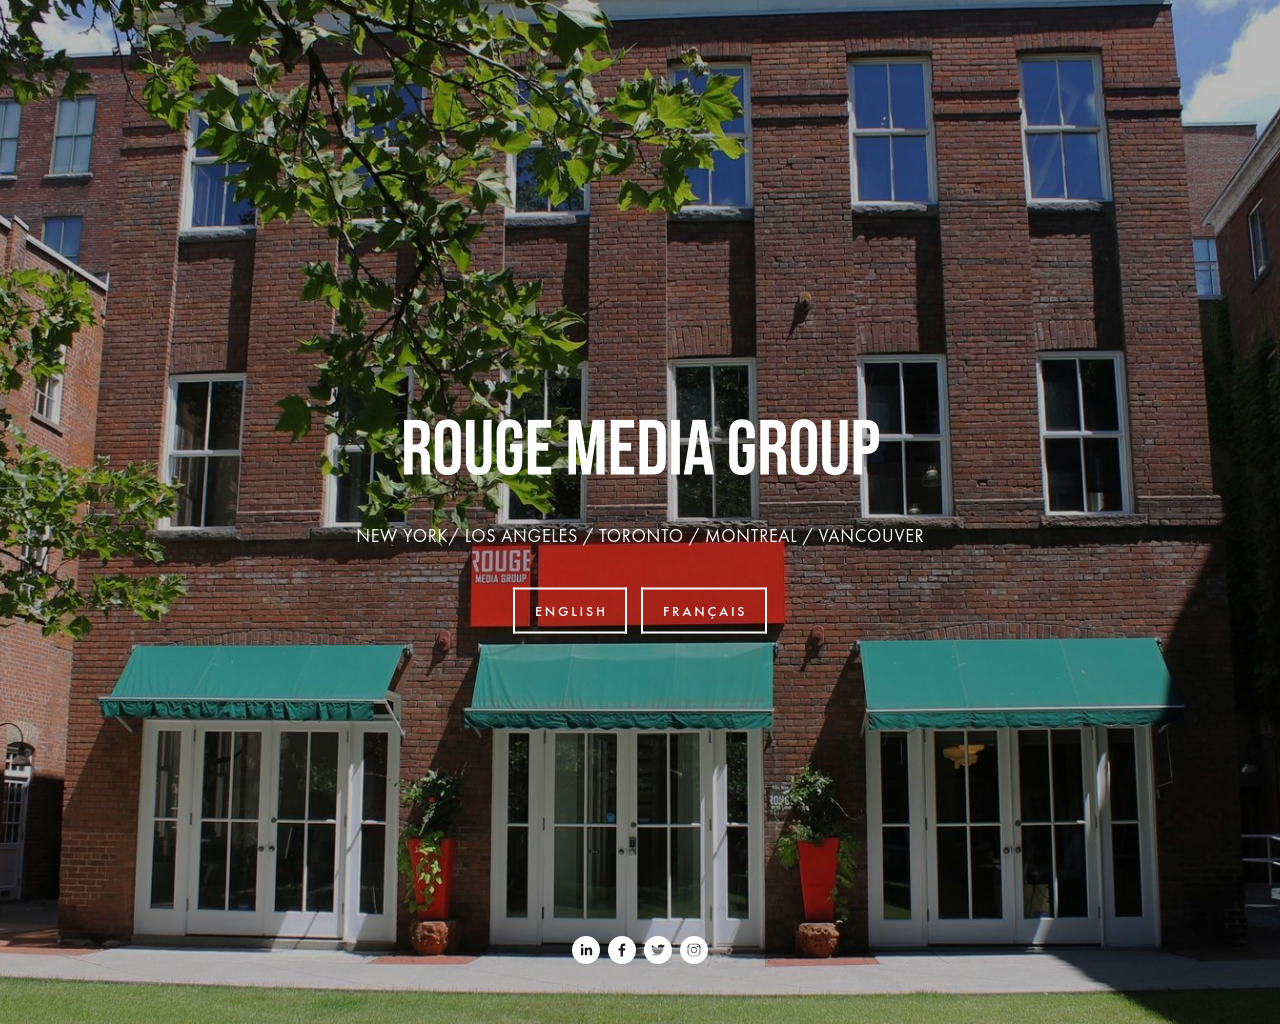 Rouge-Media-Group-Advertising-Reviews-Pricing